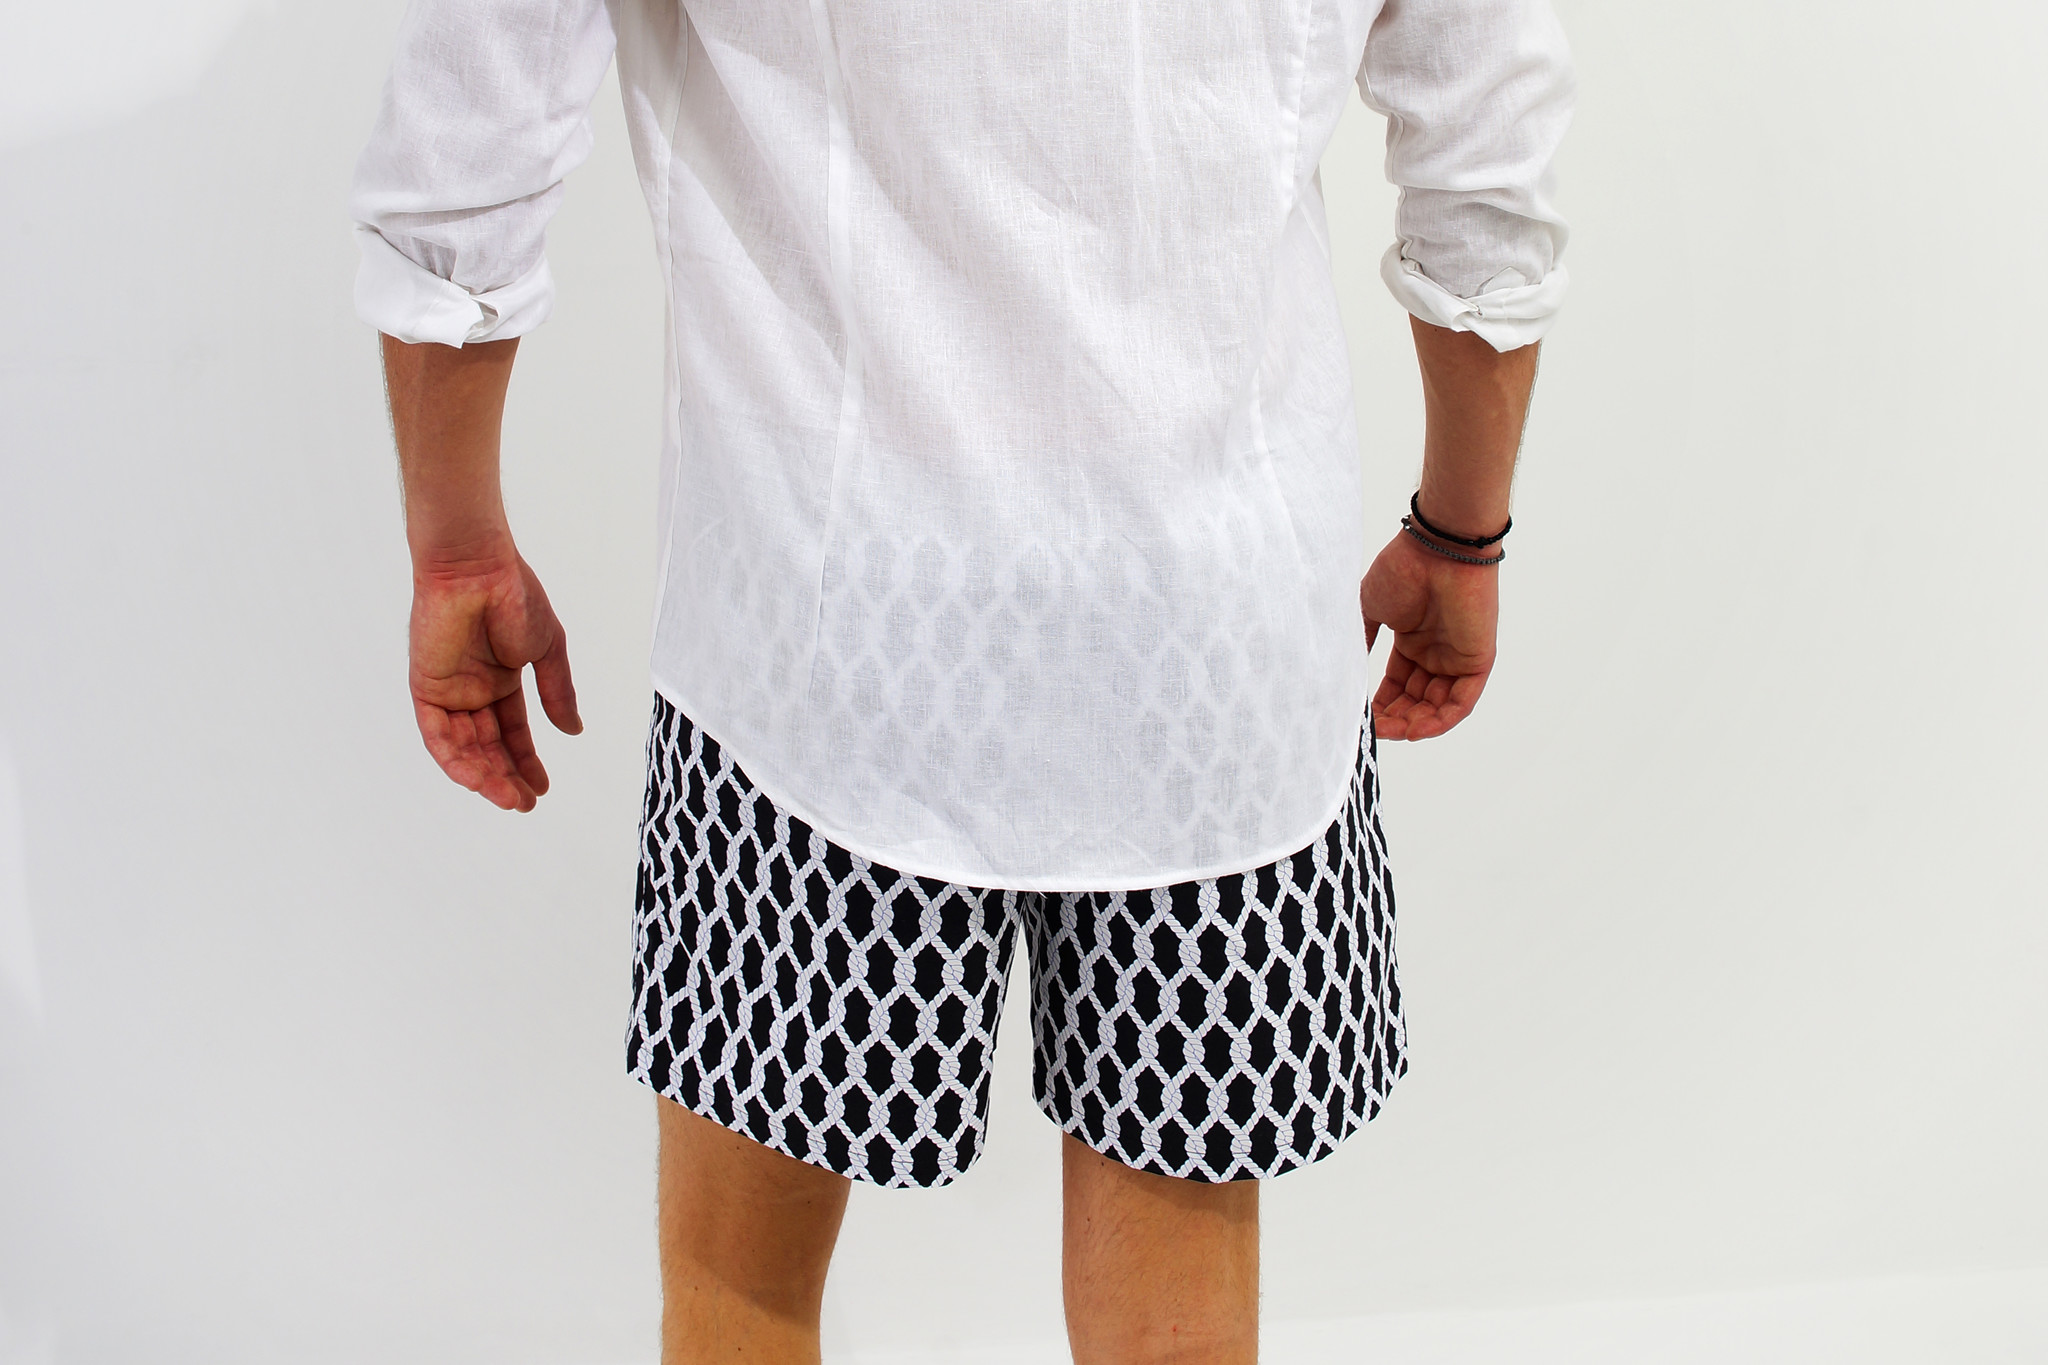 Arpione A luxury eco-friendly swimshort for men